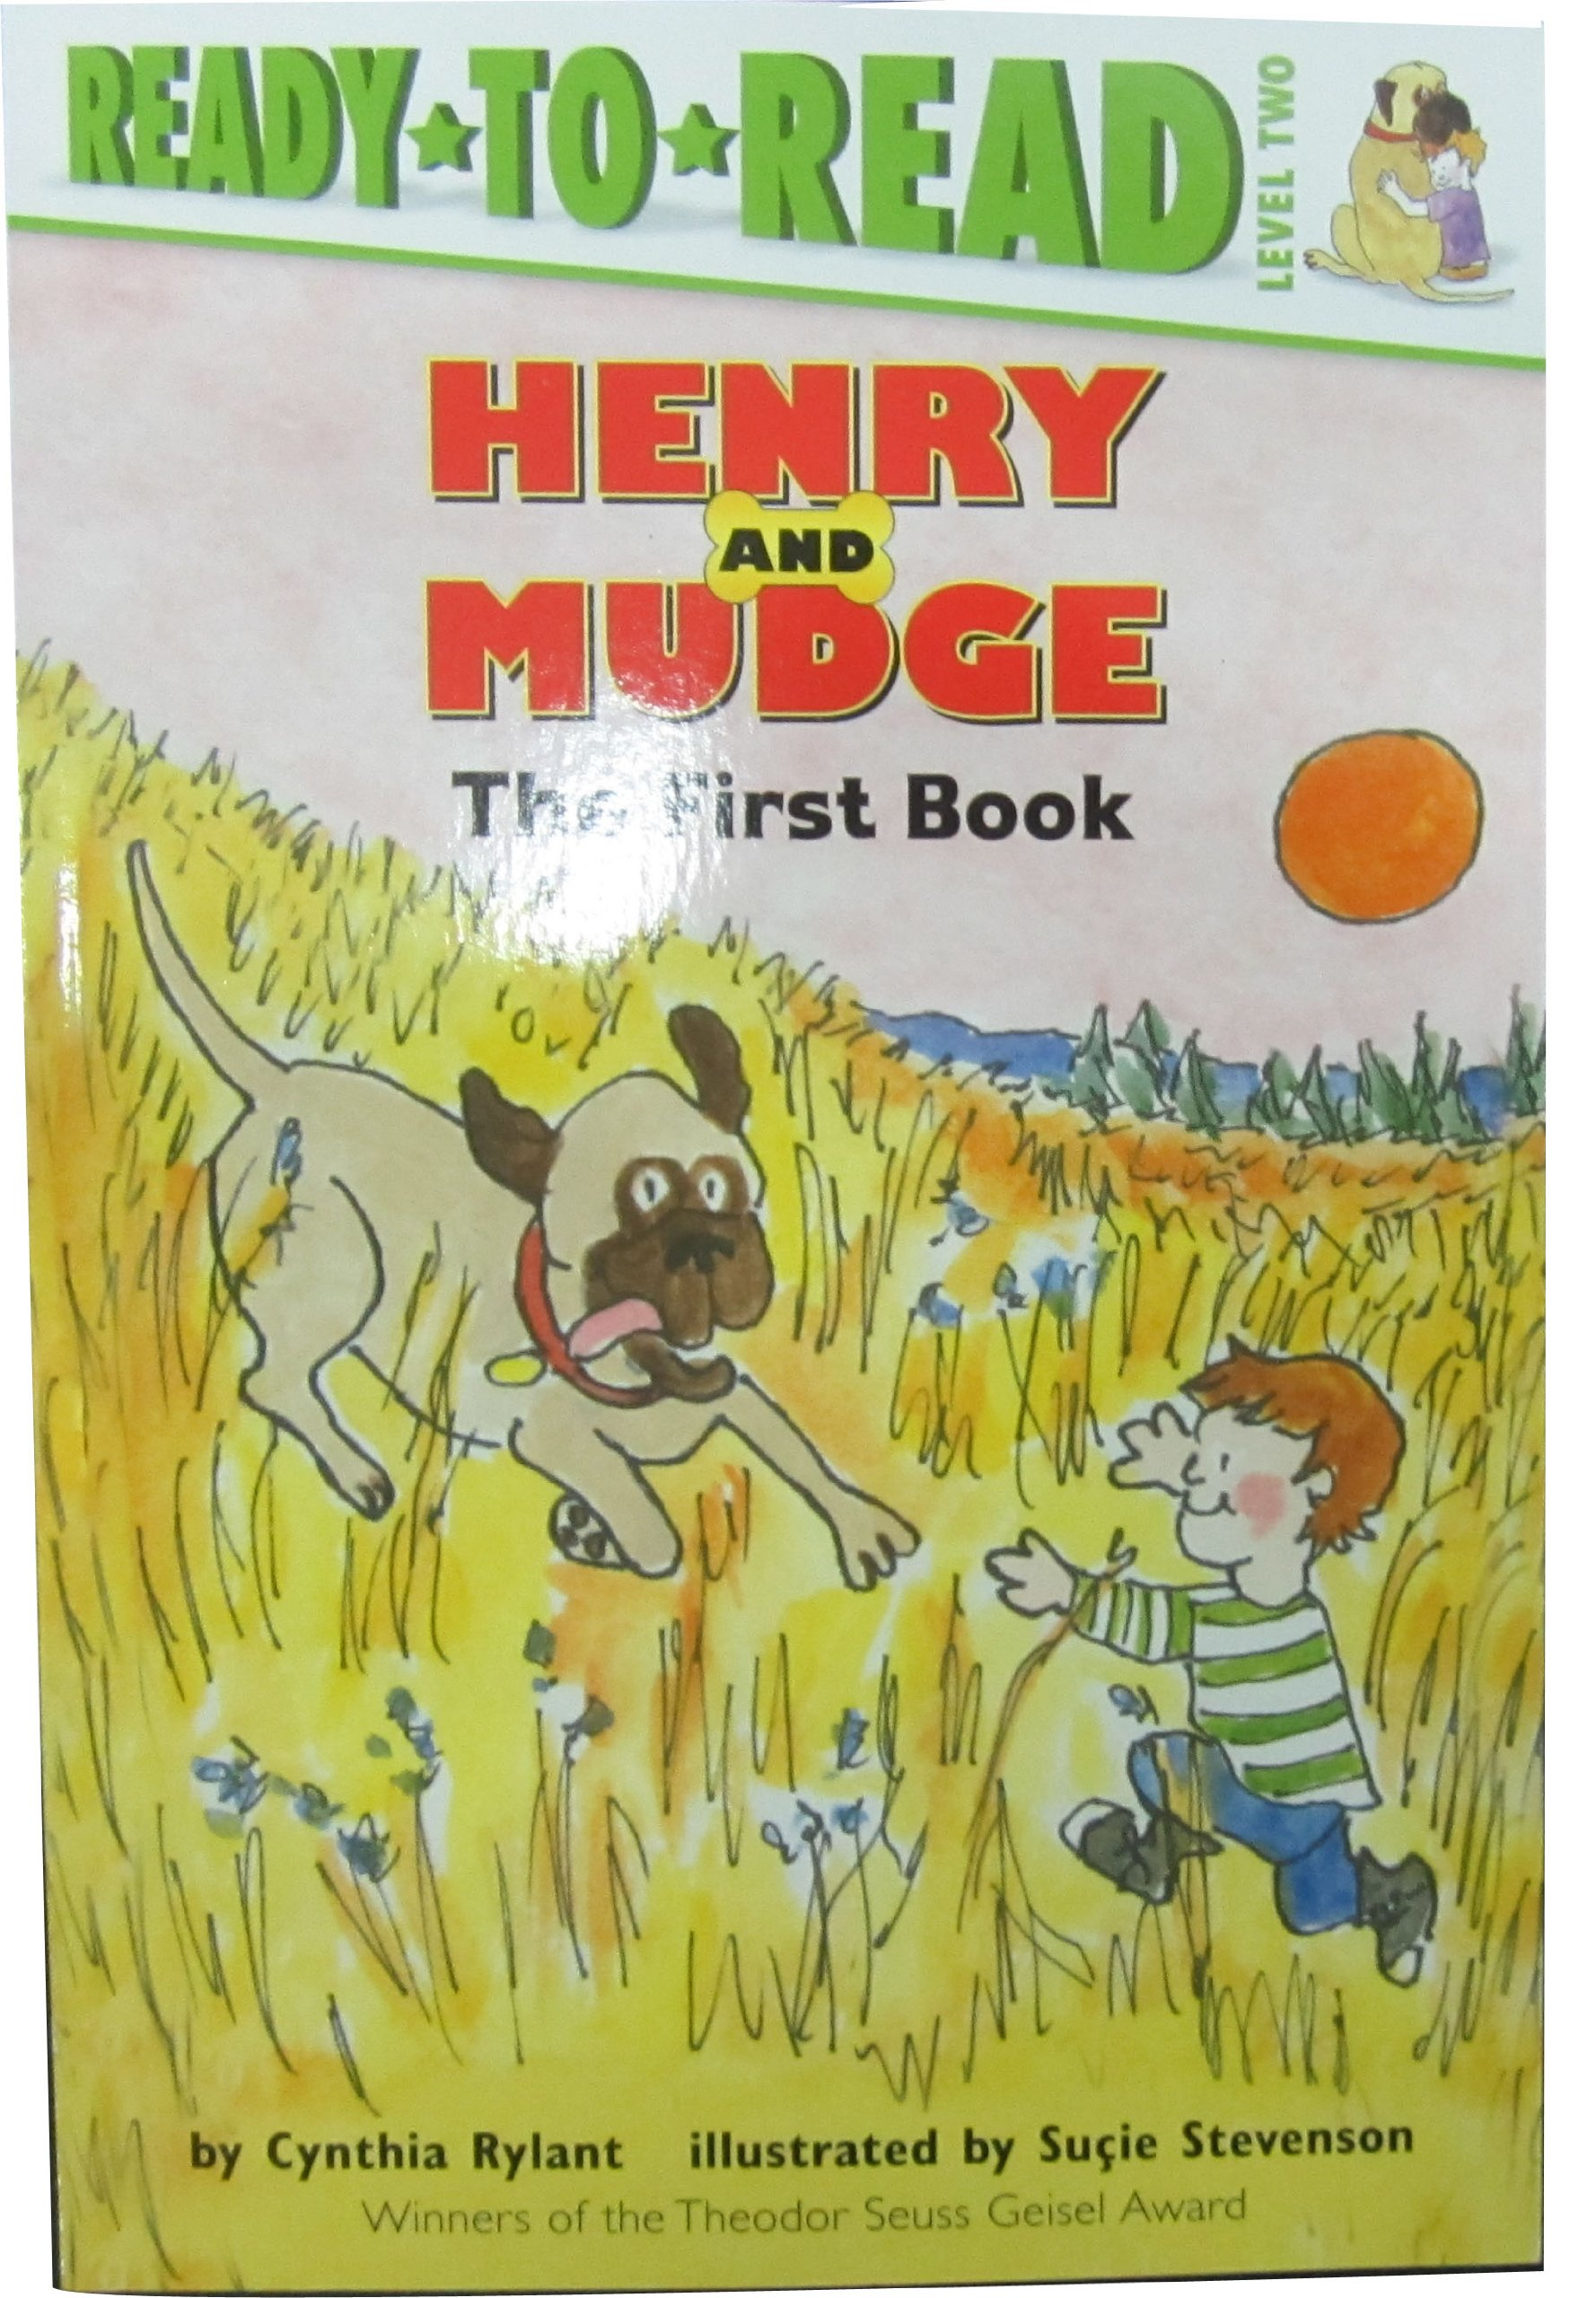 Henry And Mudge First Book: Cynthia Rylant, Suçie Stevenson: 9780689810053:  Amazon.com: Books